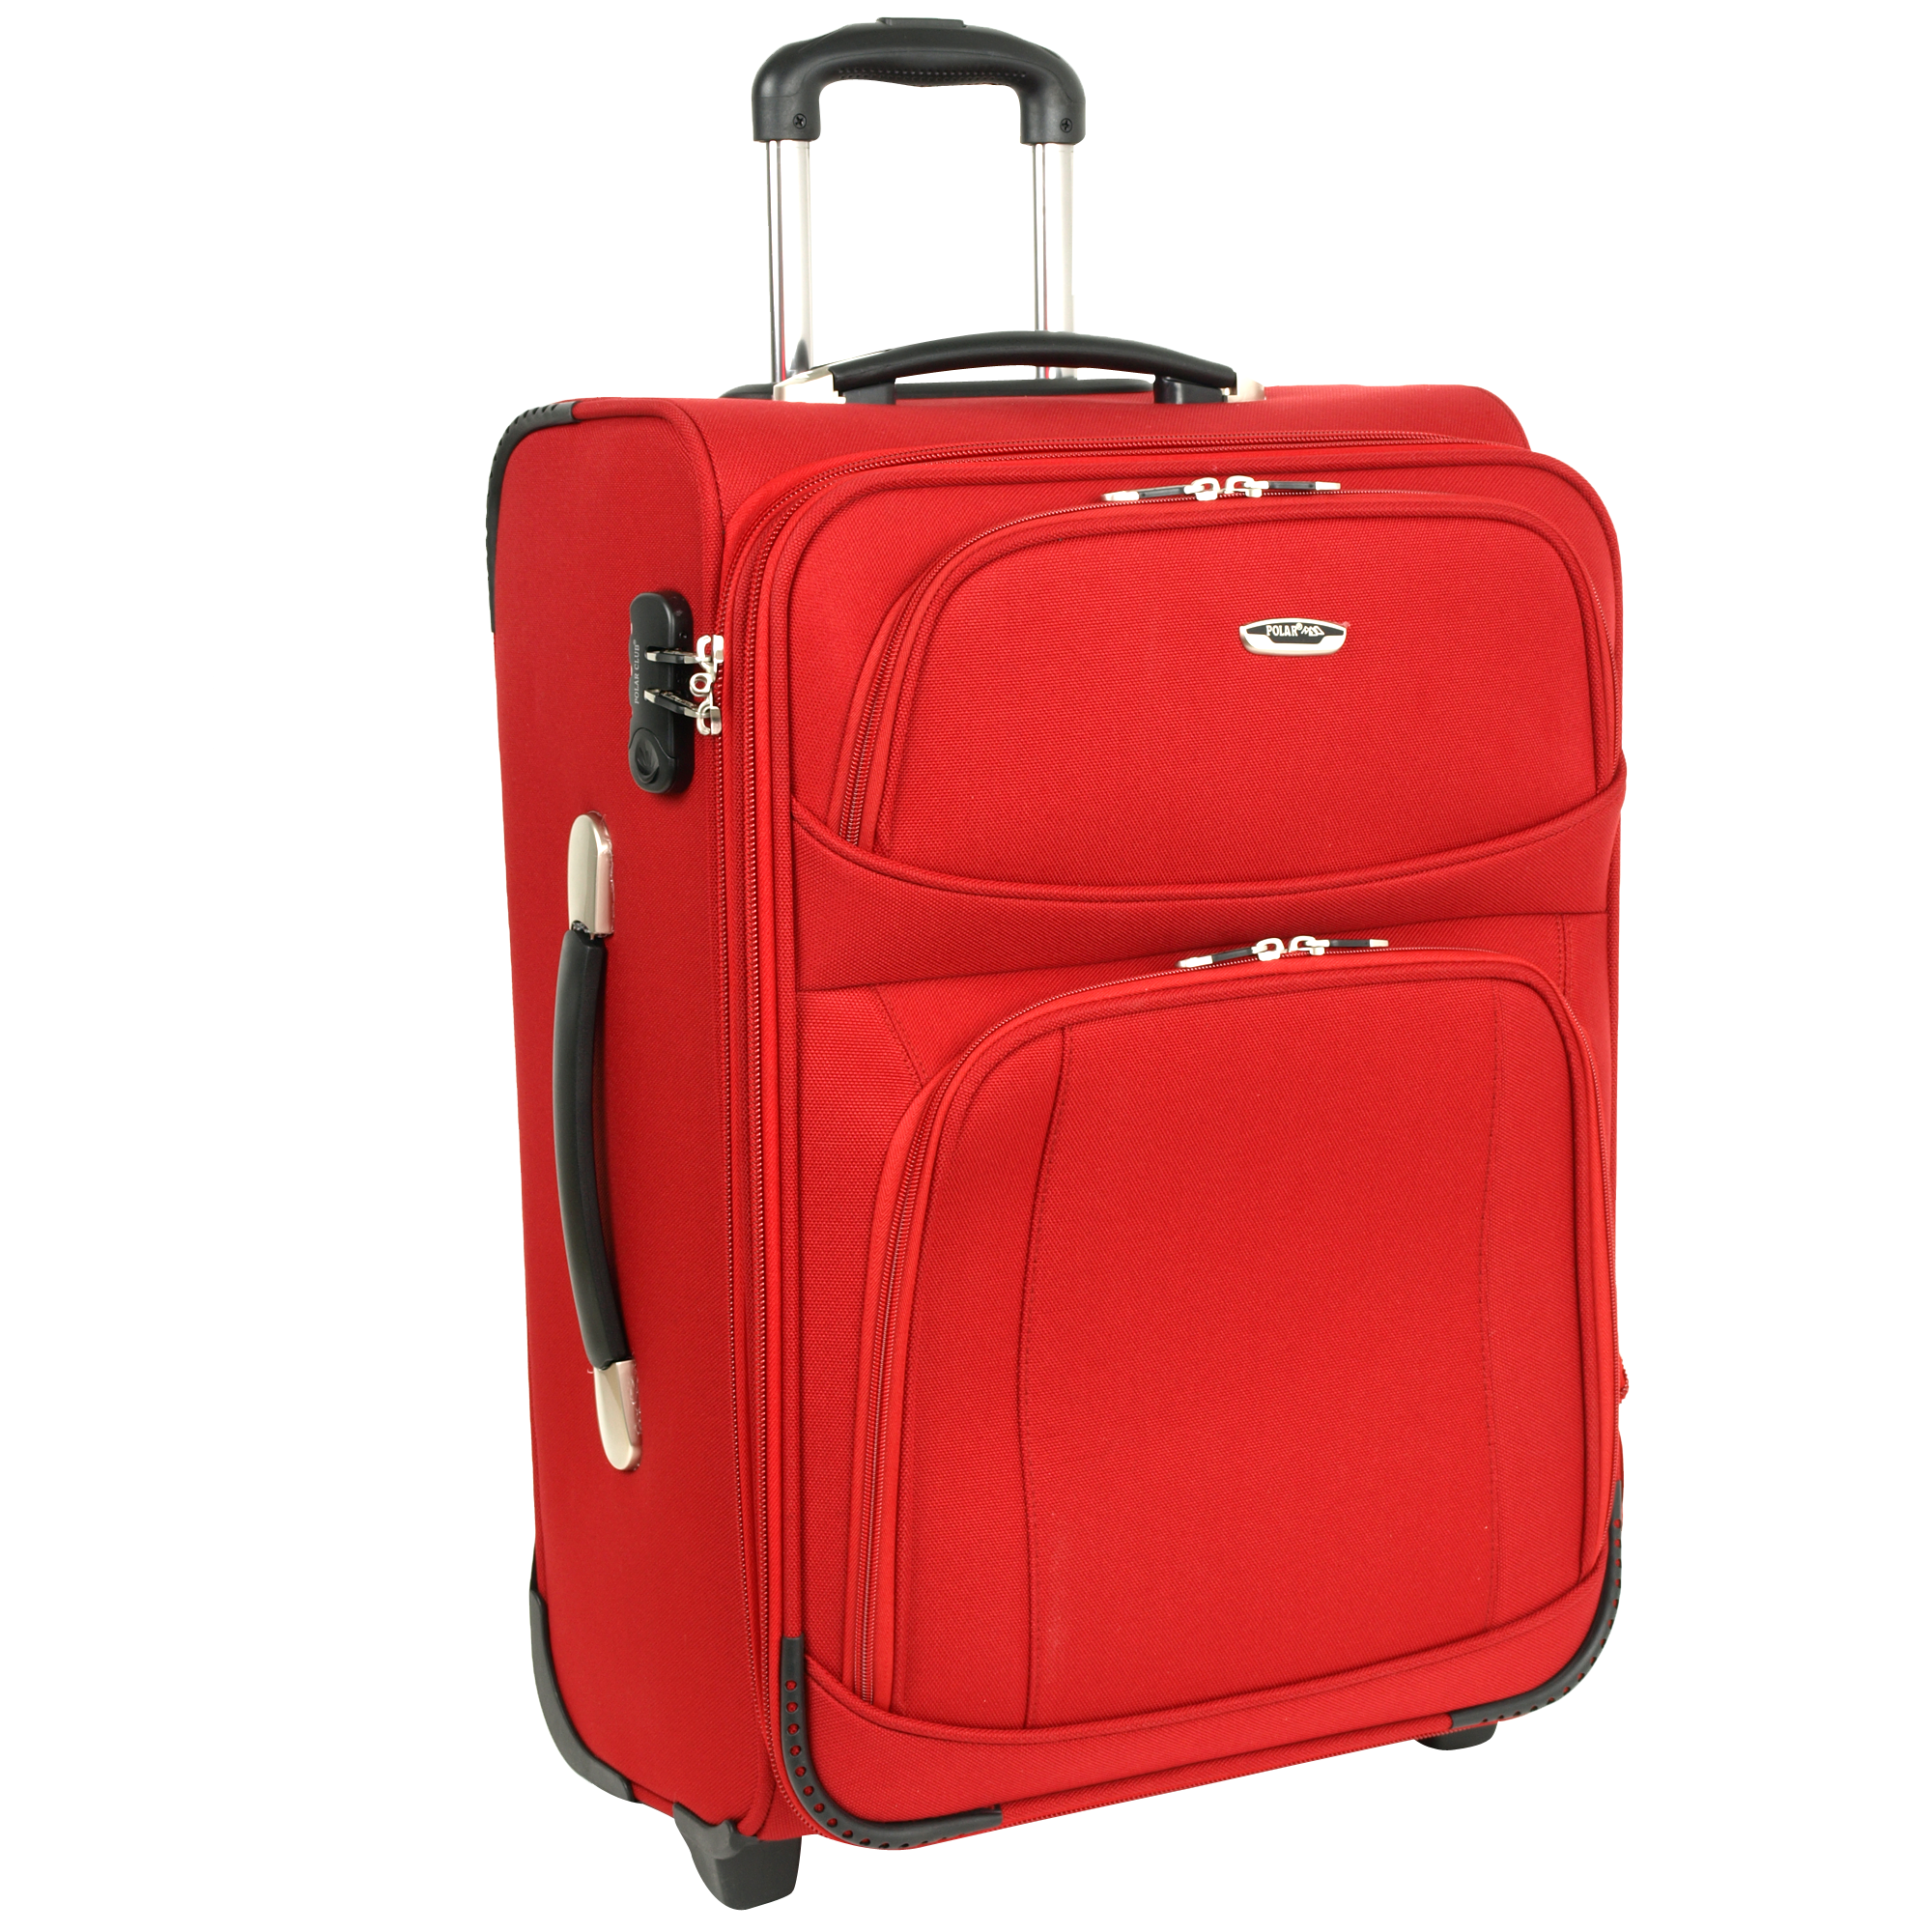 luggage png images are download #35140